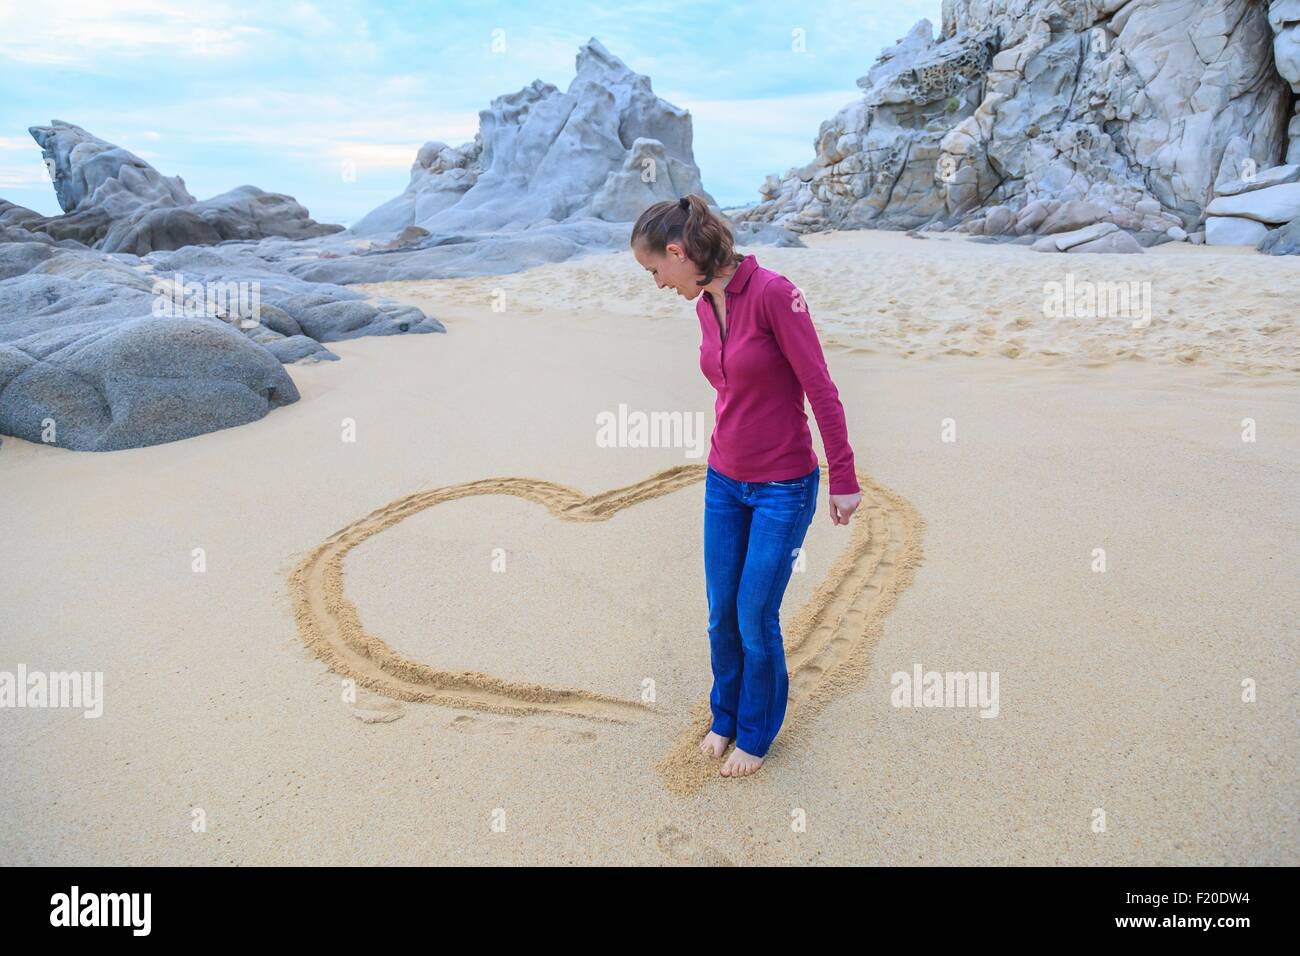 Mid adult woman on beach, drawing heart shape with feet - Stock Image